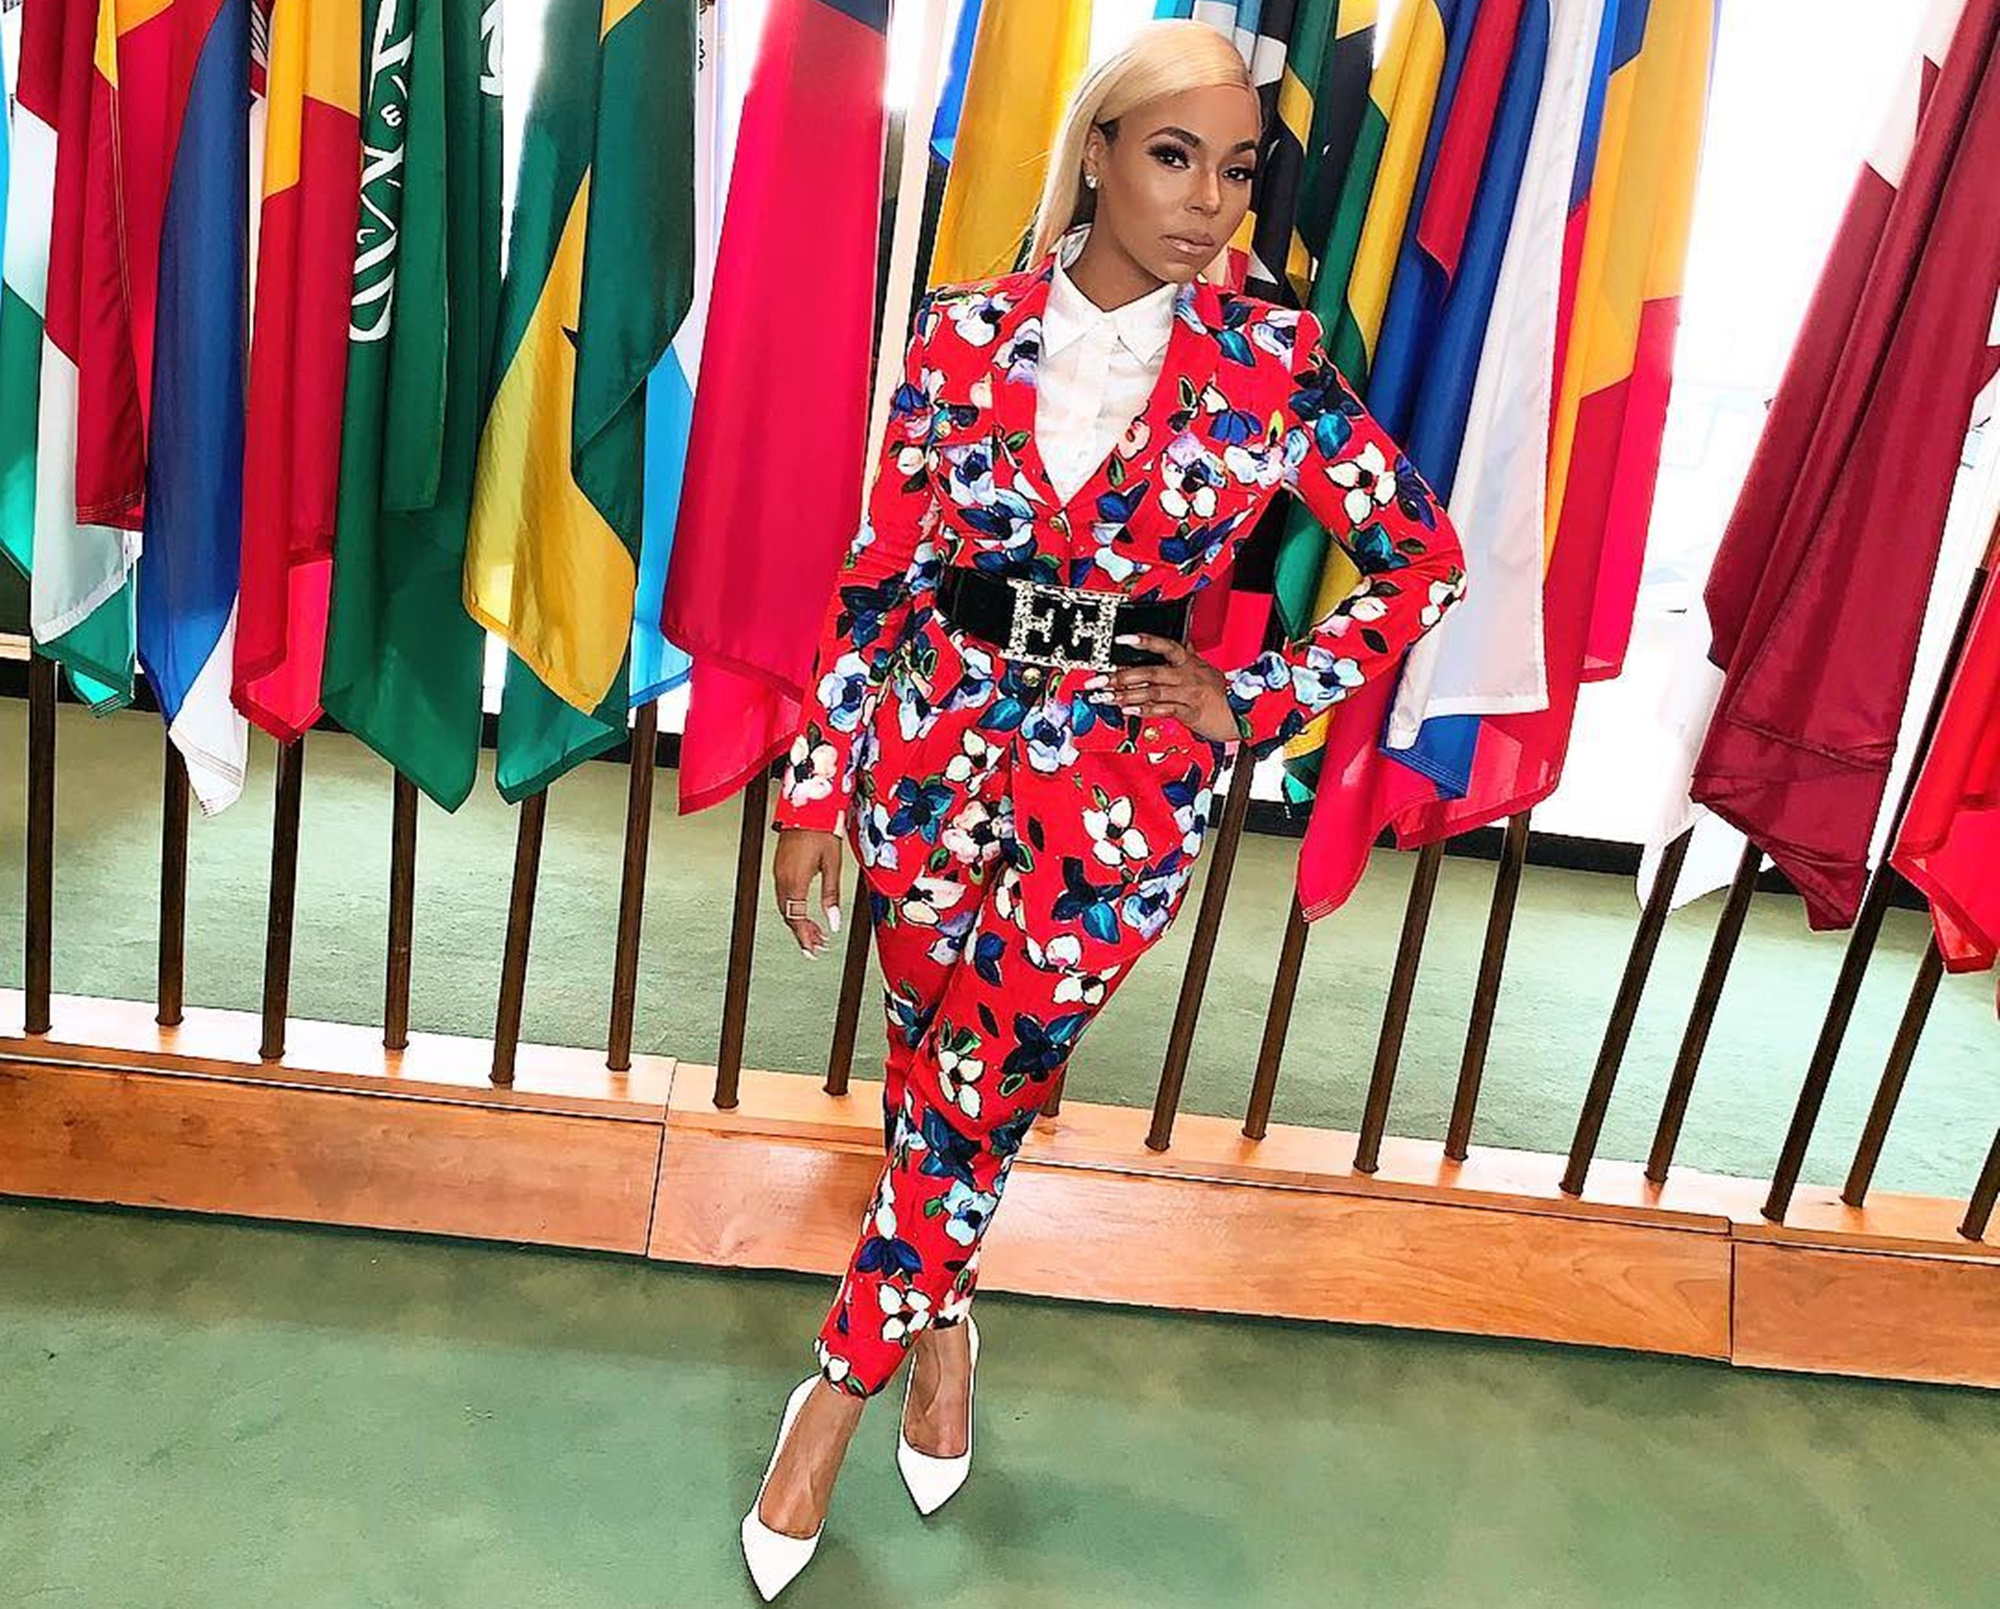 ashanti-brings-passion-to-video-about-climate-change-as-she-reveals-why-the-future-means-so-much-to-her-supporters-leave-feeling-inspired-and-ready-to-answer-the-call